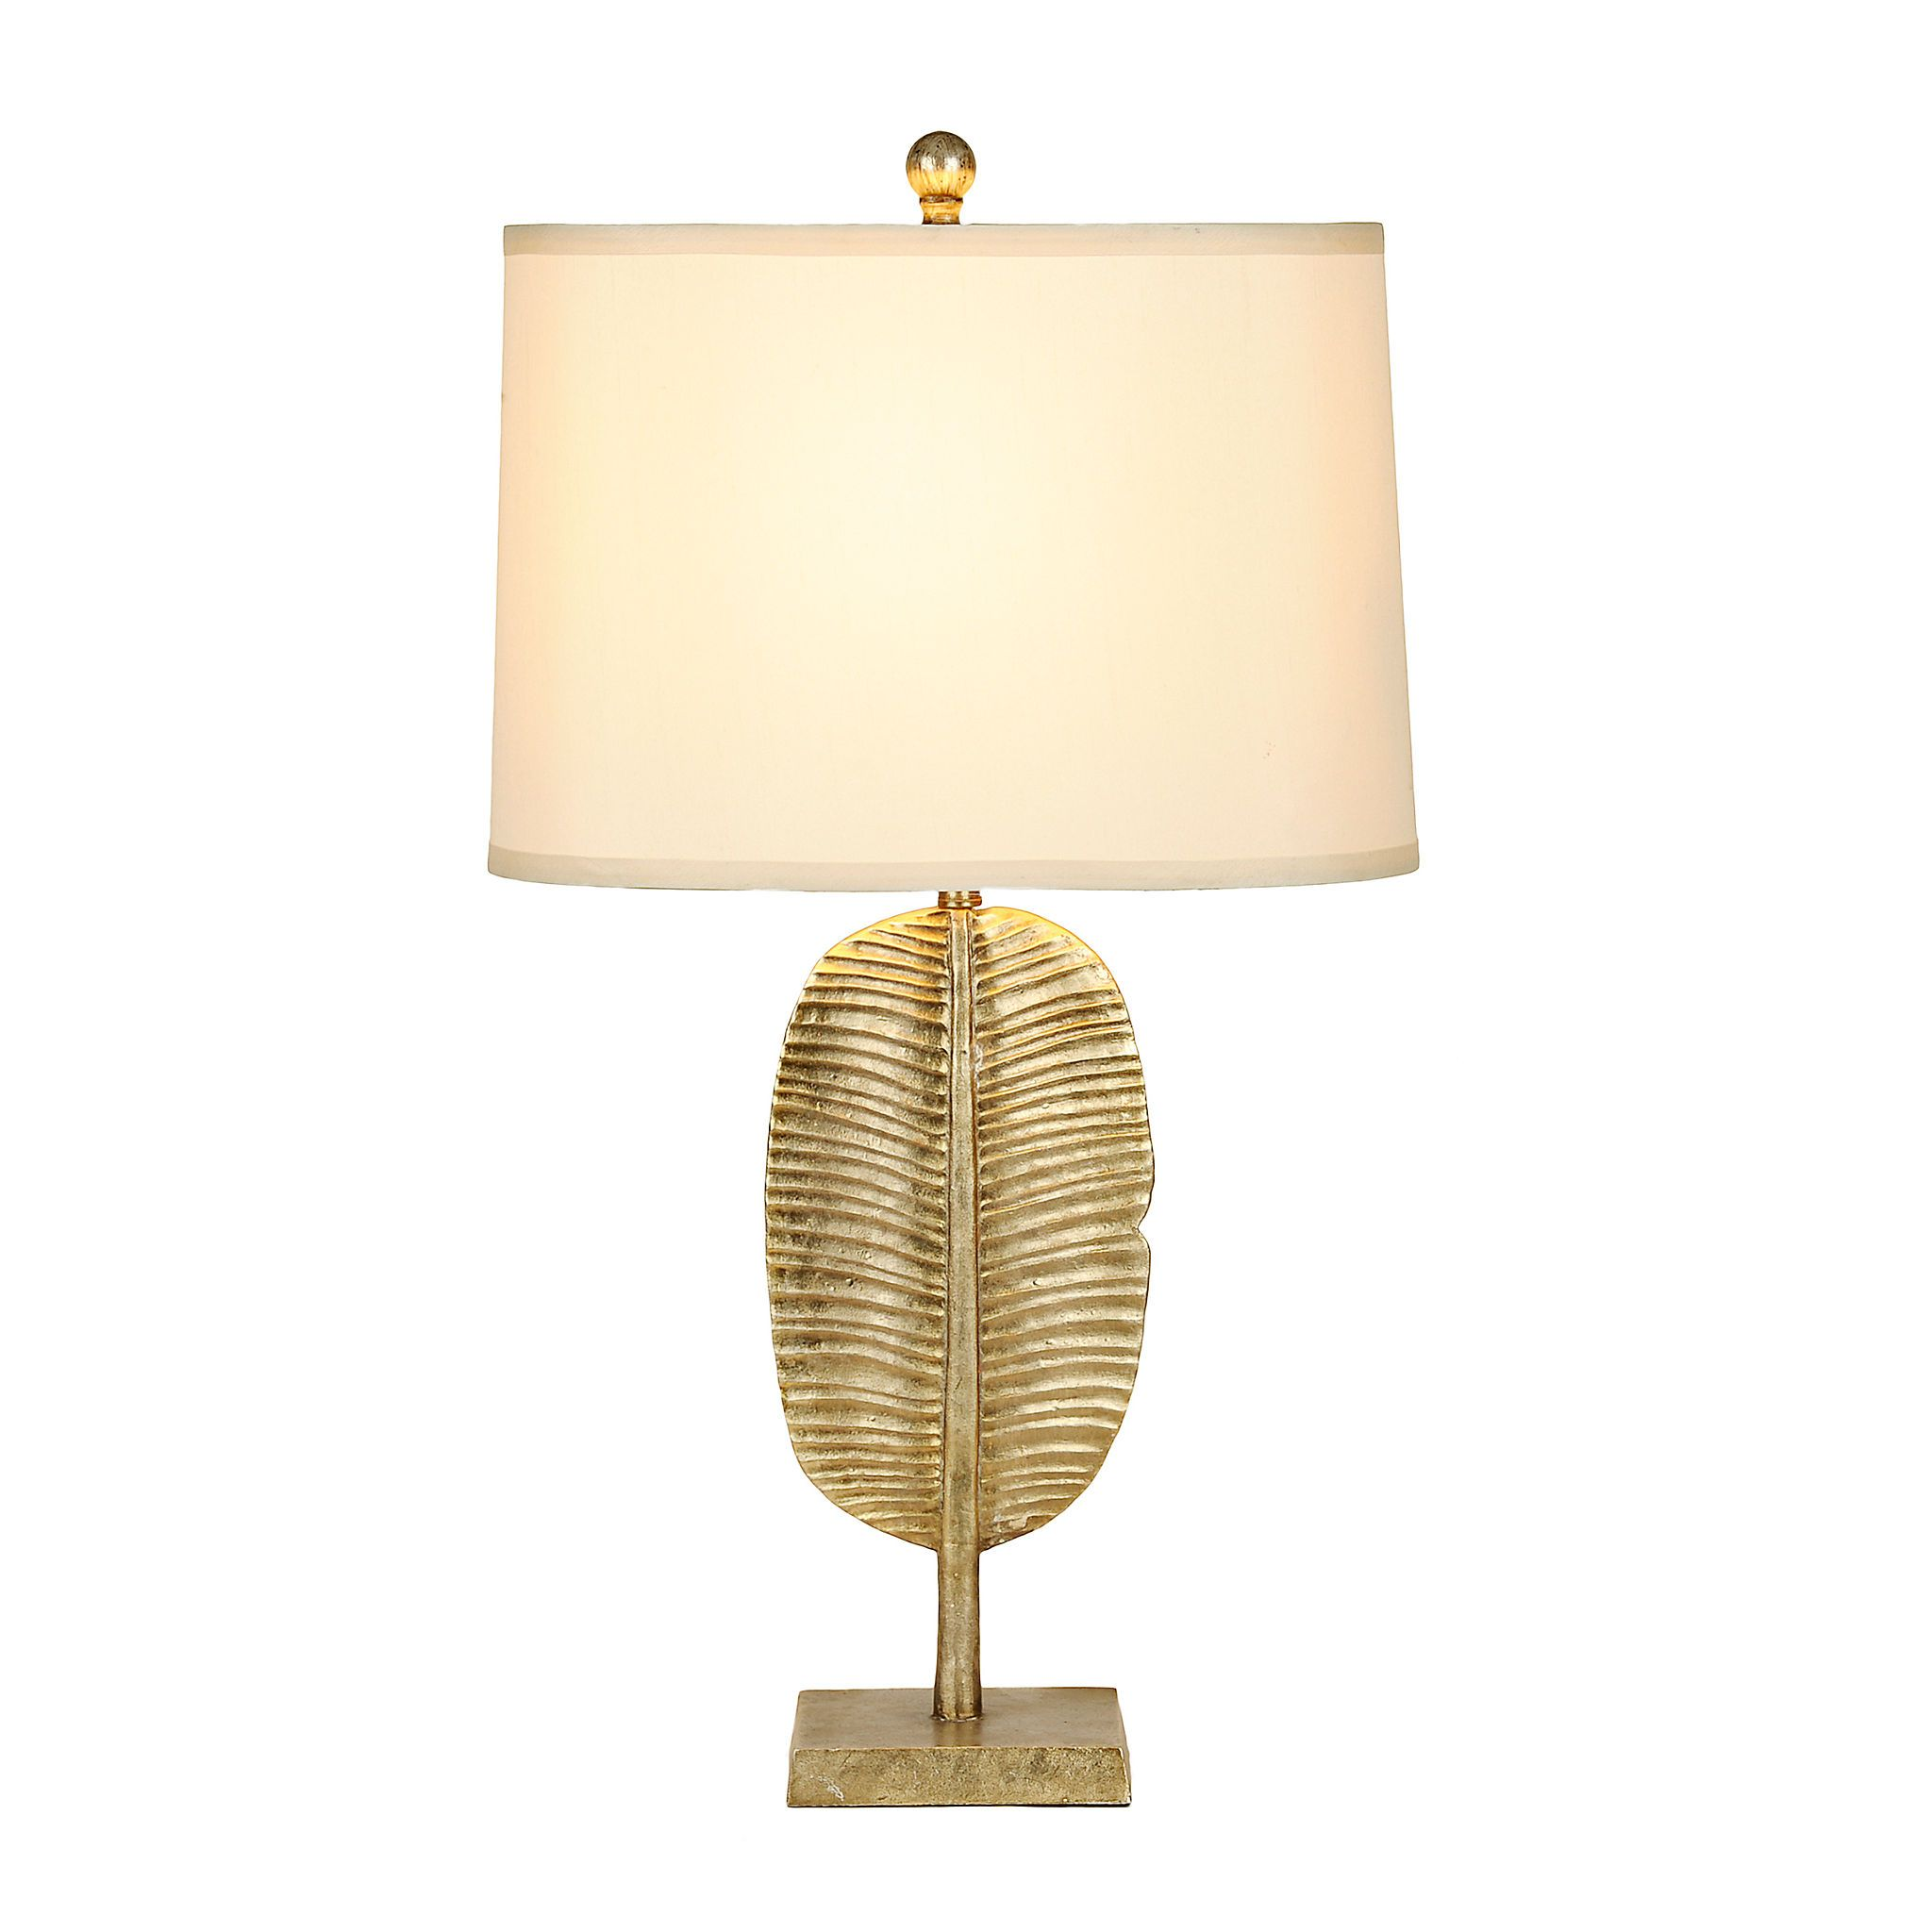 Gold palm leaf table lamp leaf table palm and leaves gold palm leaf table lamp aloadofball Choice Image